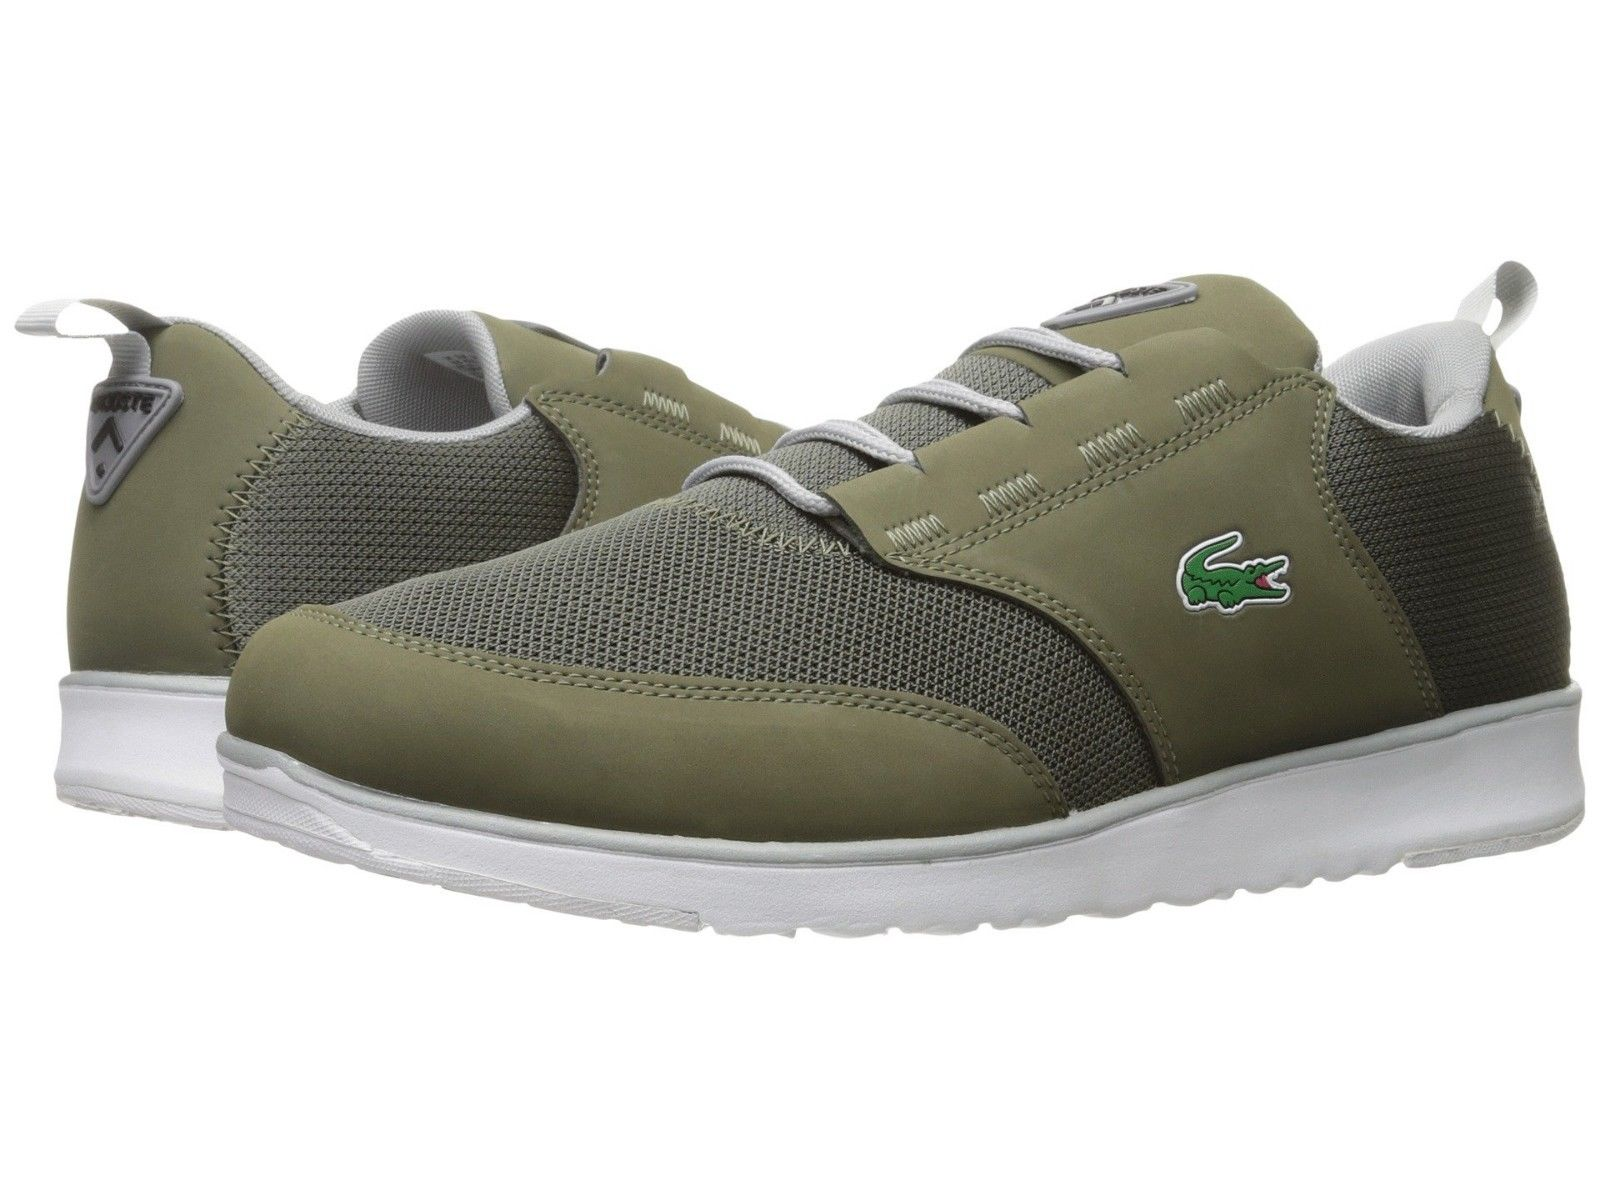 SCARPE SNEAKERS UOMO LACOSTE ORIGINAL LIGHT 217 1 7 33SPM10241X5 PELLE PE NEW